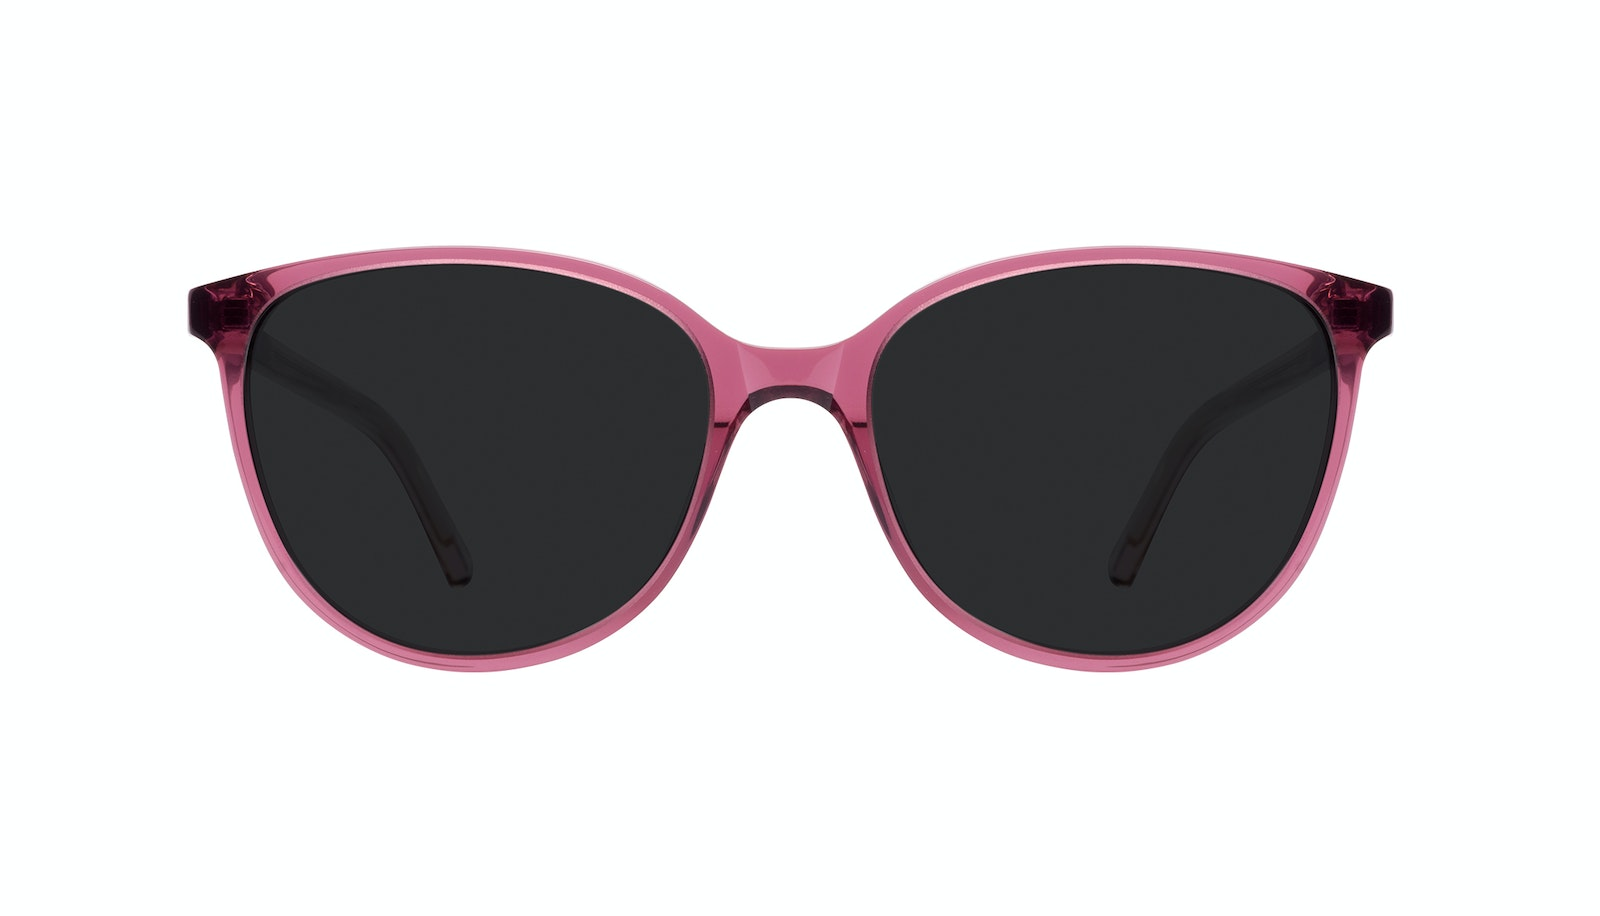 Affordable Fashion Glasses Round Sunglasses Women Imagine Petite Berry